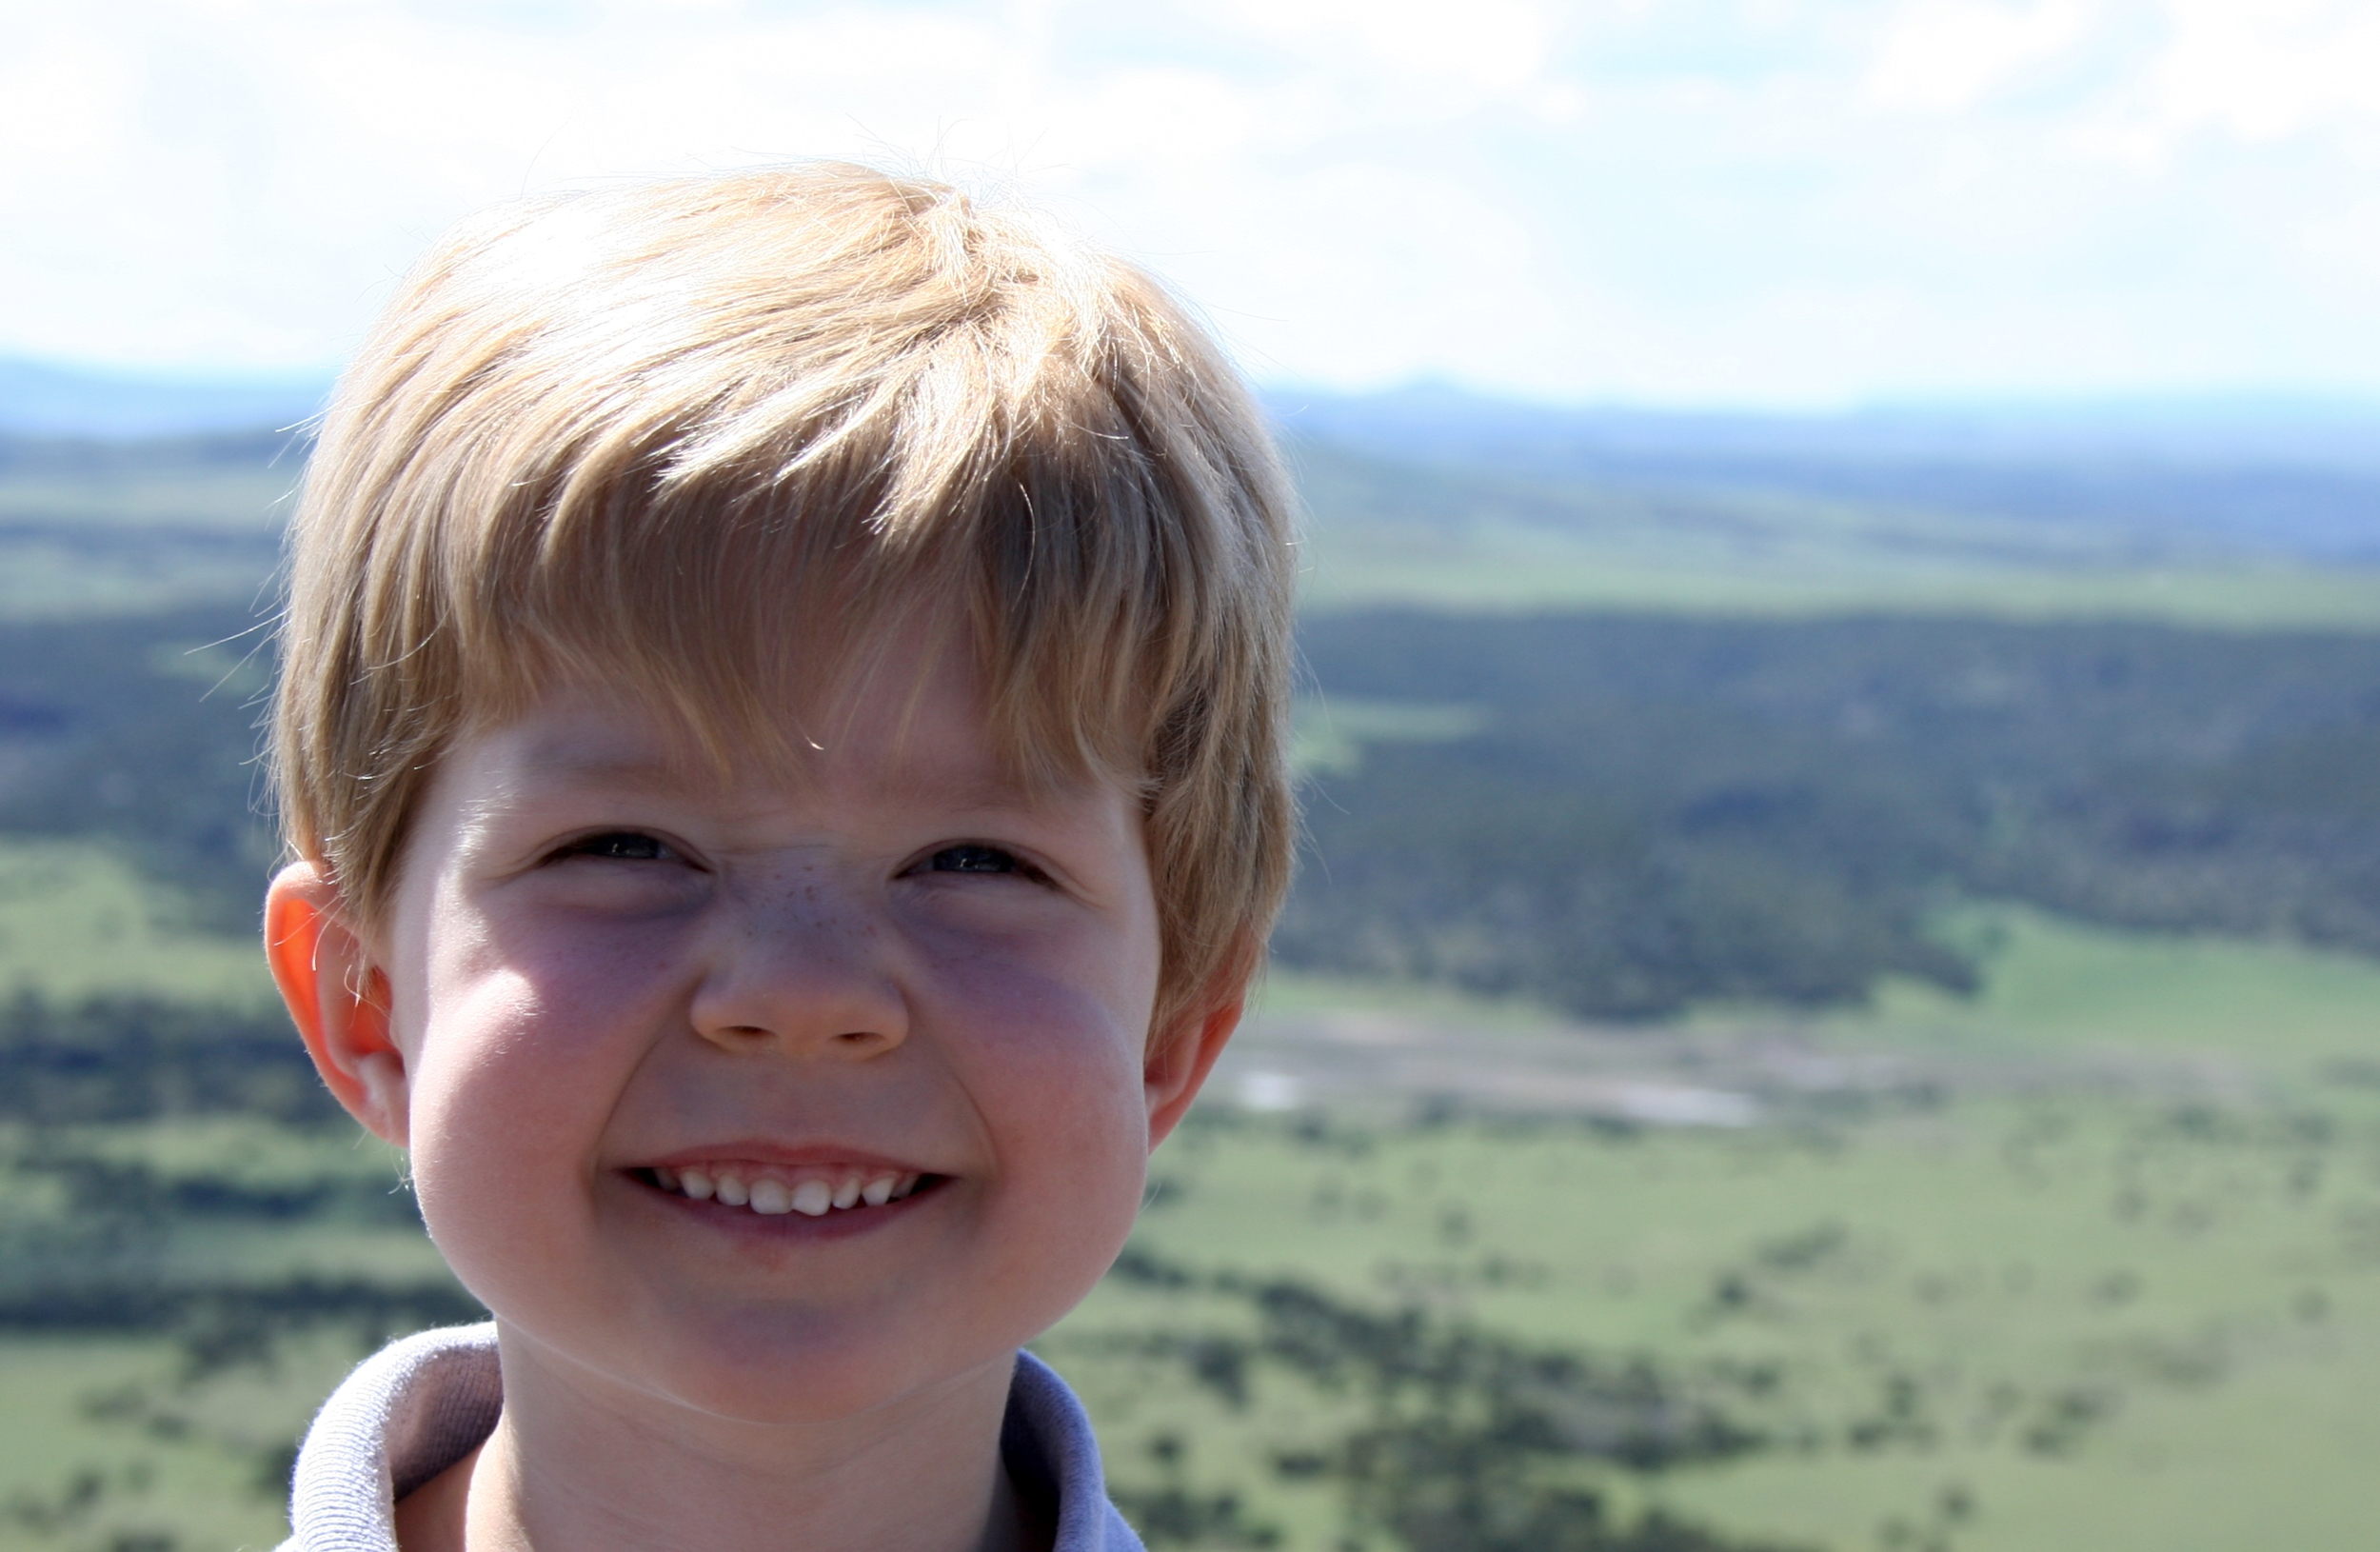 Ronan standing at the edge Capulin volcano